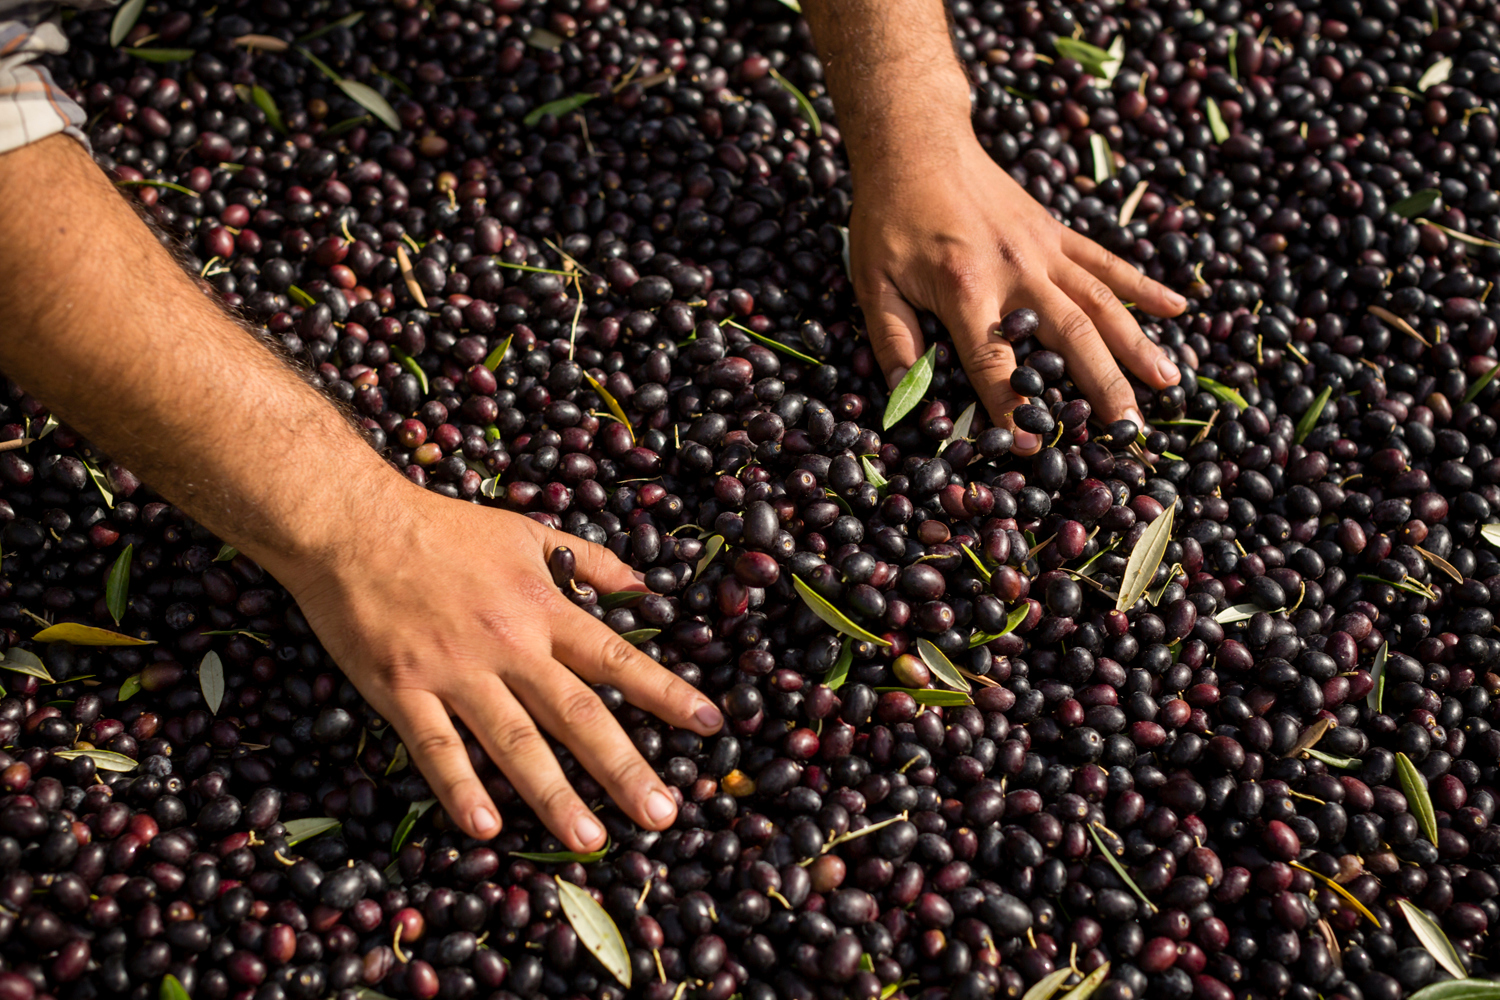 On November 5th, 2015 in Healdsburg, CA, Arturo Valladares, harvests olives by hand for DaVero Farms & Winery, a Biodynamic family farm producing small lots of Italian wine and olive oil in the Dry Creek Valley. Owned by QuickBooks creator Ridgely Evers and his wife Colleen McGlynn their goal is to create a multi-generation, farm-based business that is economically, agriculturally, and environmentally sustainable. Arturo, who grew up on the DaVero home farm, is hoping to learn the trade from his father, Farm Manager Juan Valladares who helped plant the first olive trees in 1990.  Located in Sonoma, the 1768-square mile county is know for its attention to food and is chocked full of wineries, dairies, micro-distilleries, bakeries, restaurants, gardens, and orchards.Contact: Andrew Hock, Marketing Director, 707-431-8000